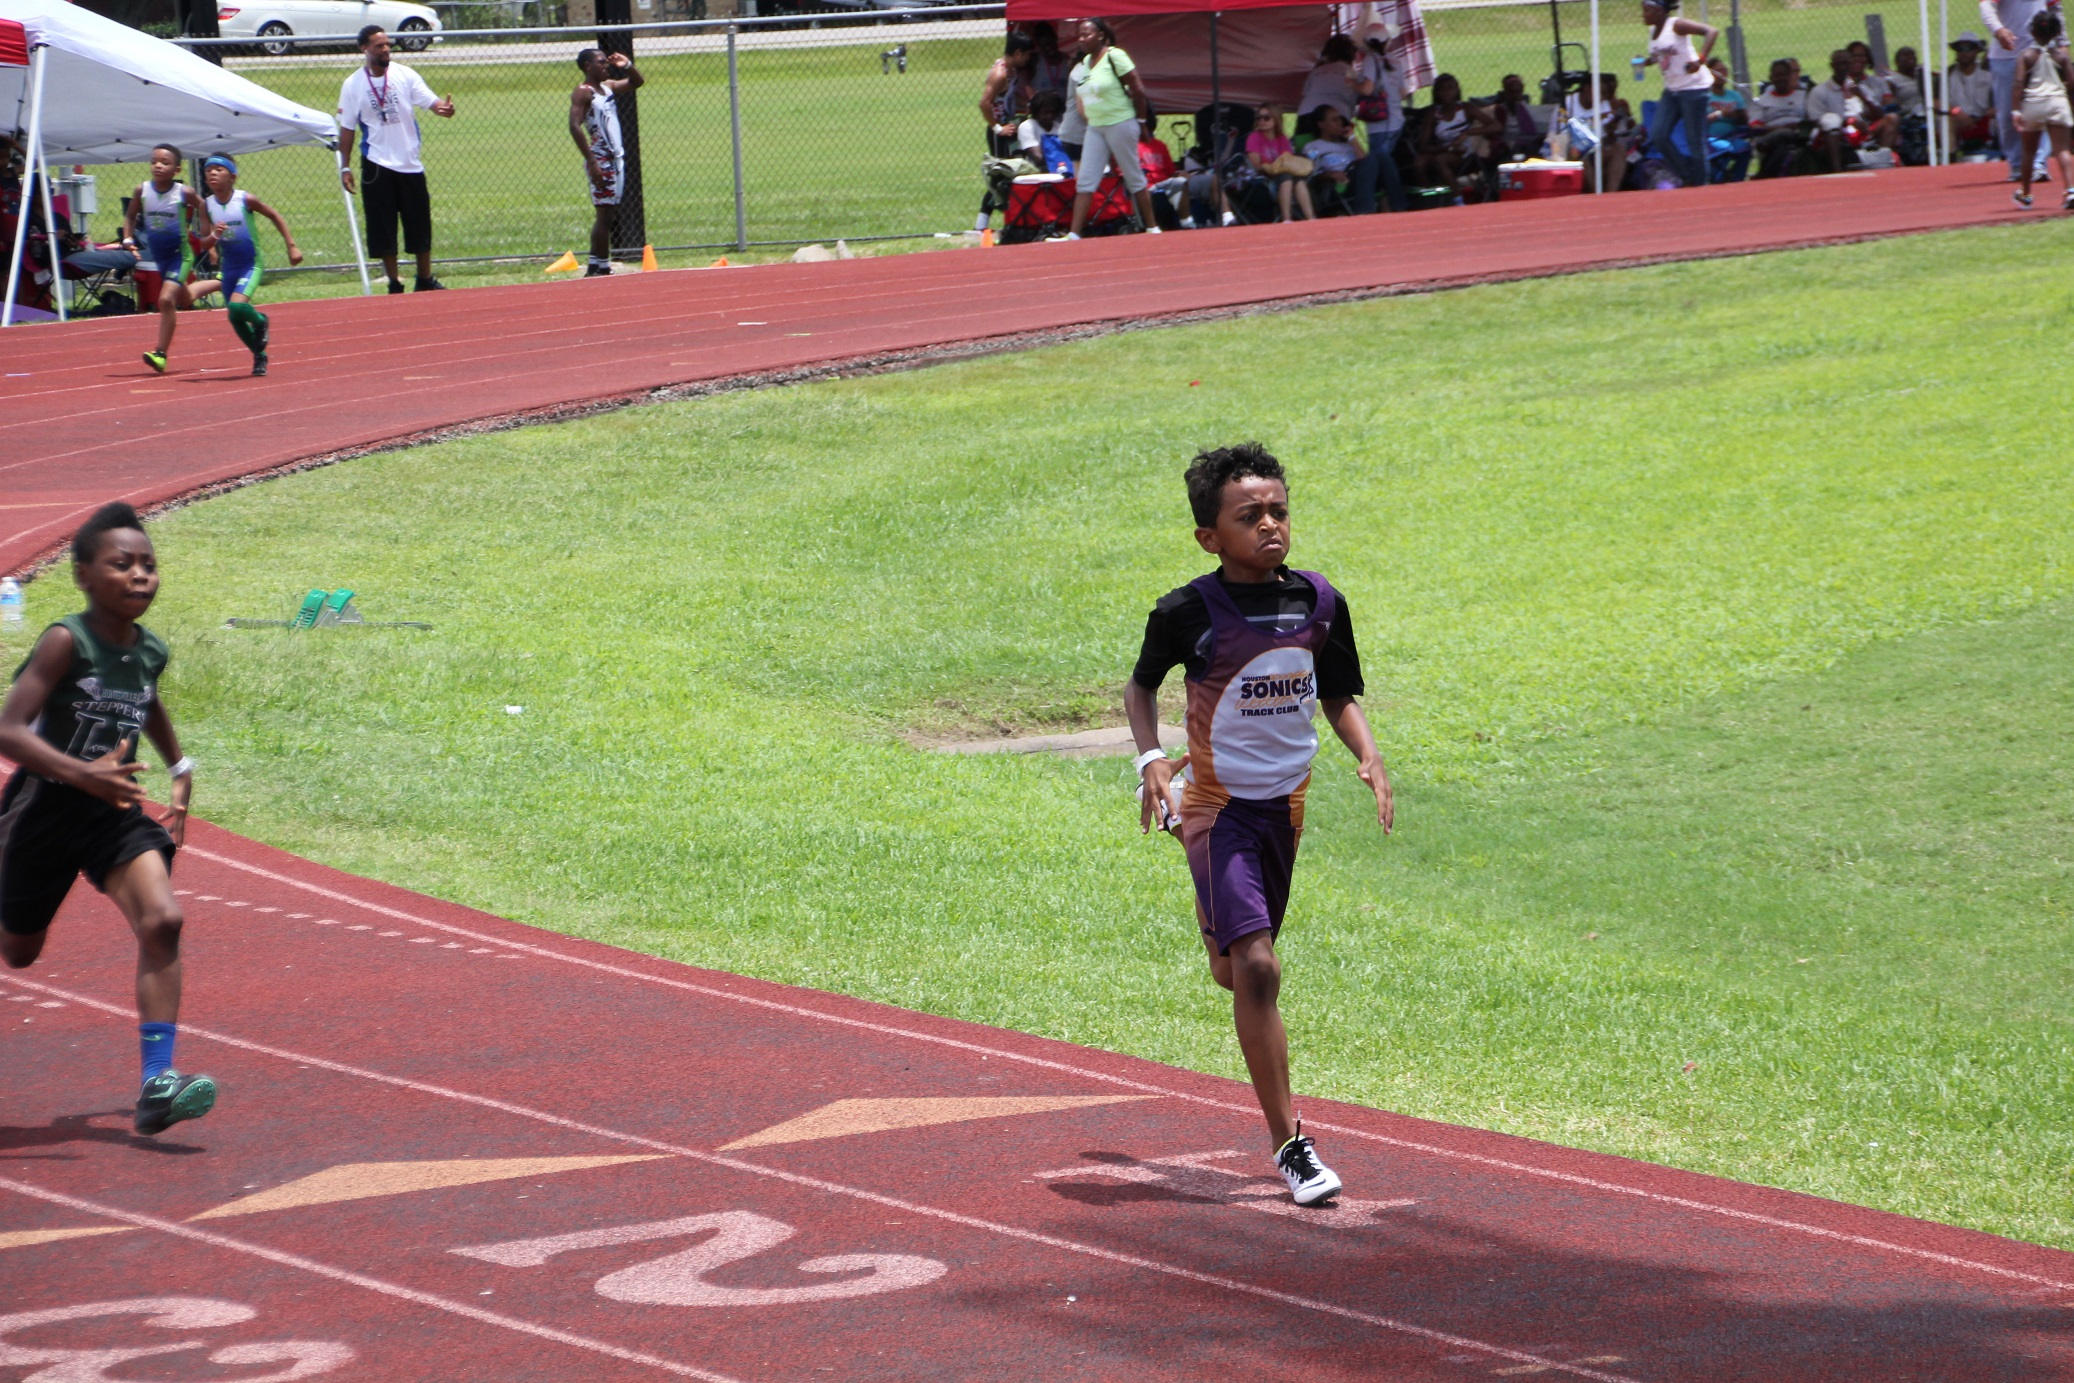 Connor running the 400m